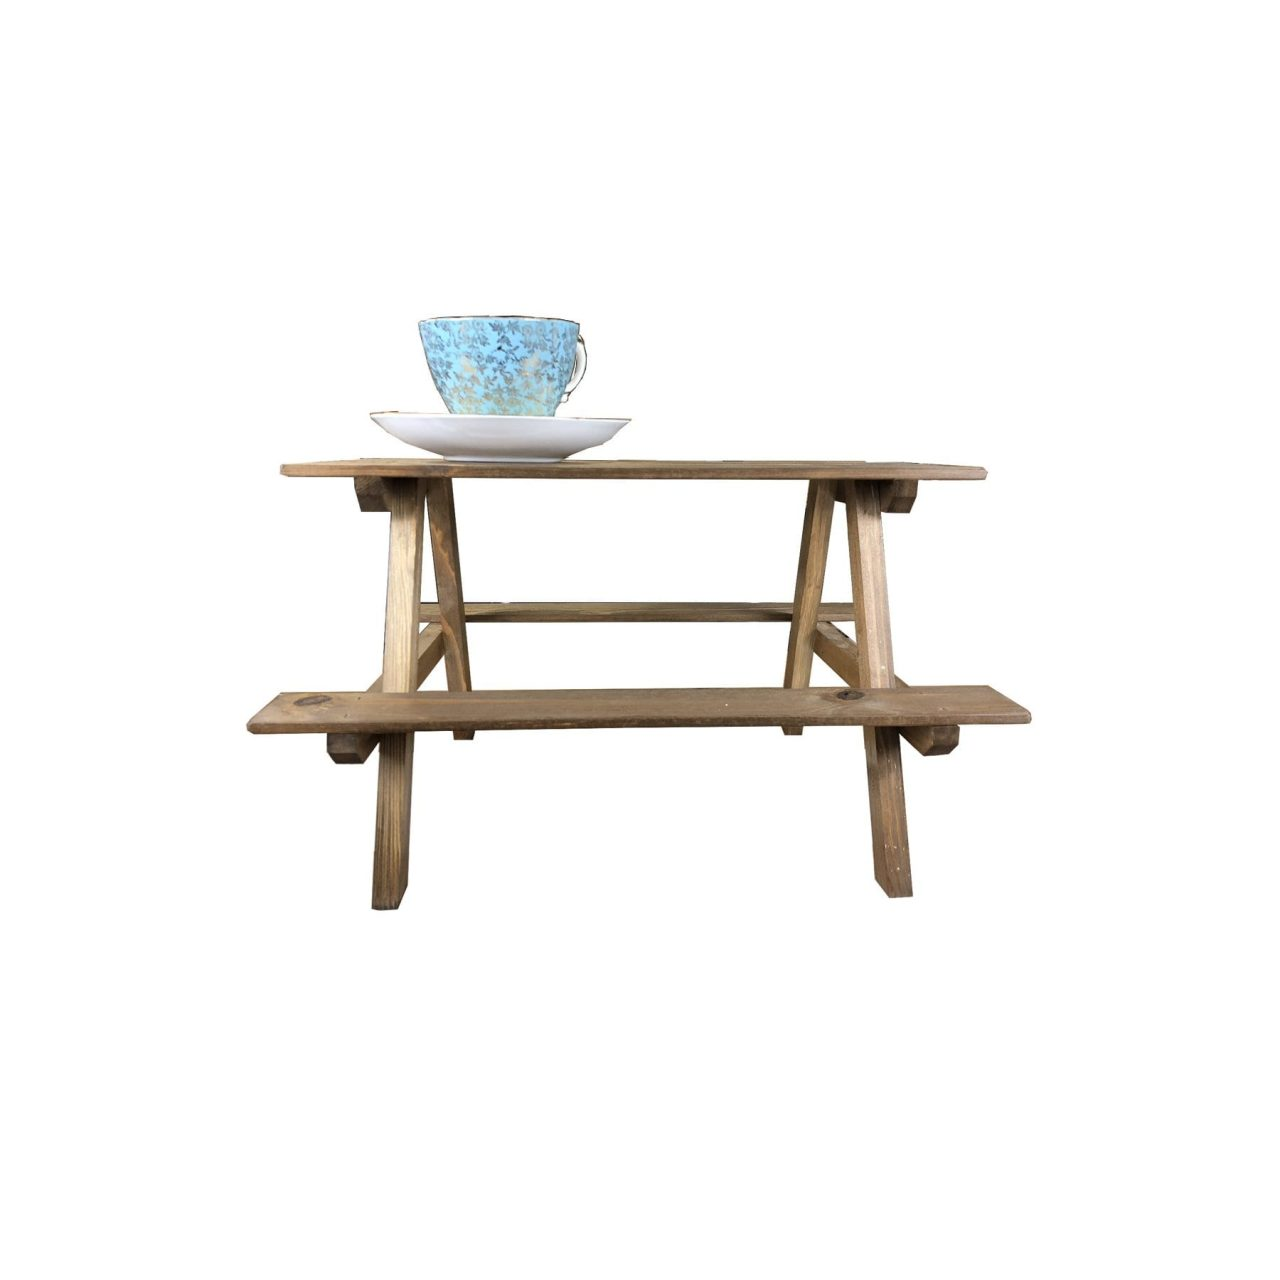 Rustic Mini Picnic Bench Display Quirky Tea Amp Cake Stand